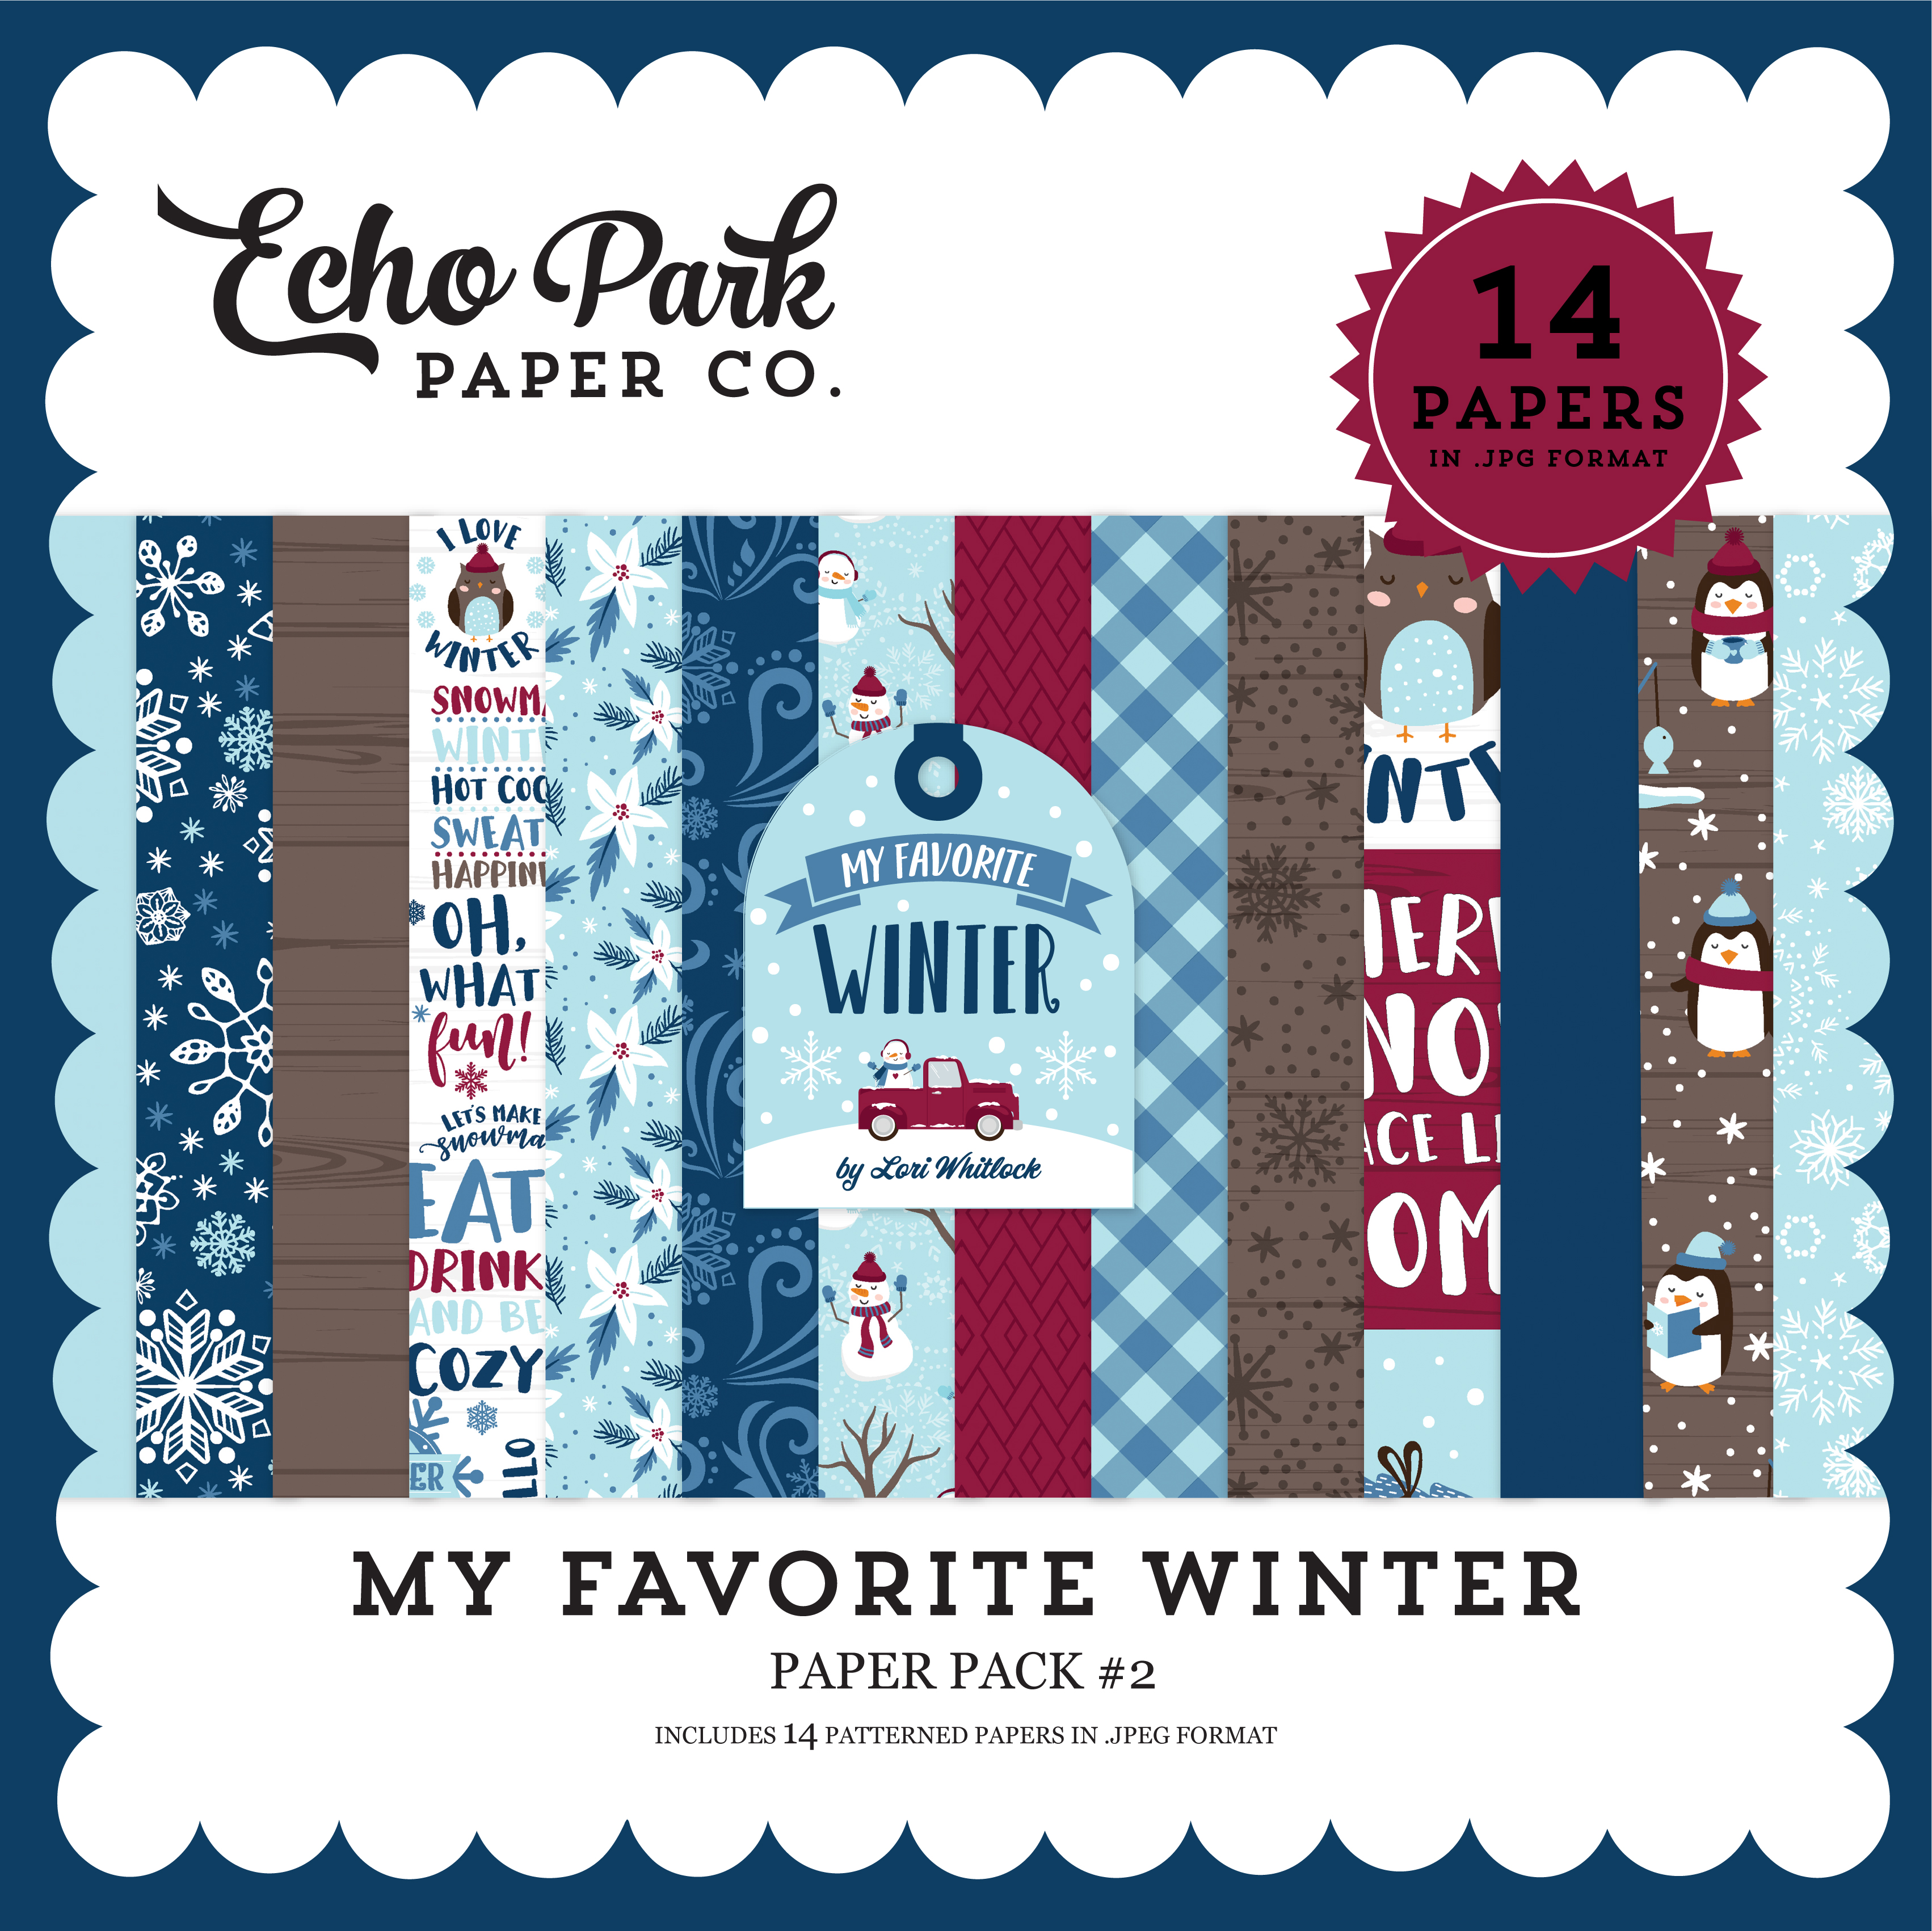 My Favorite Winter Paper Pack #2